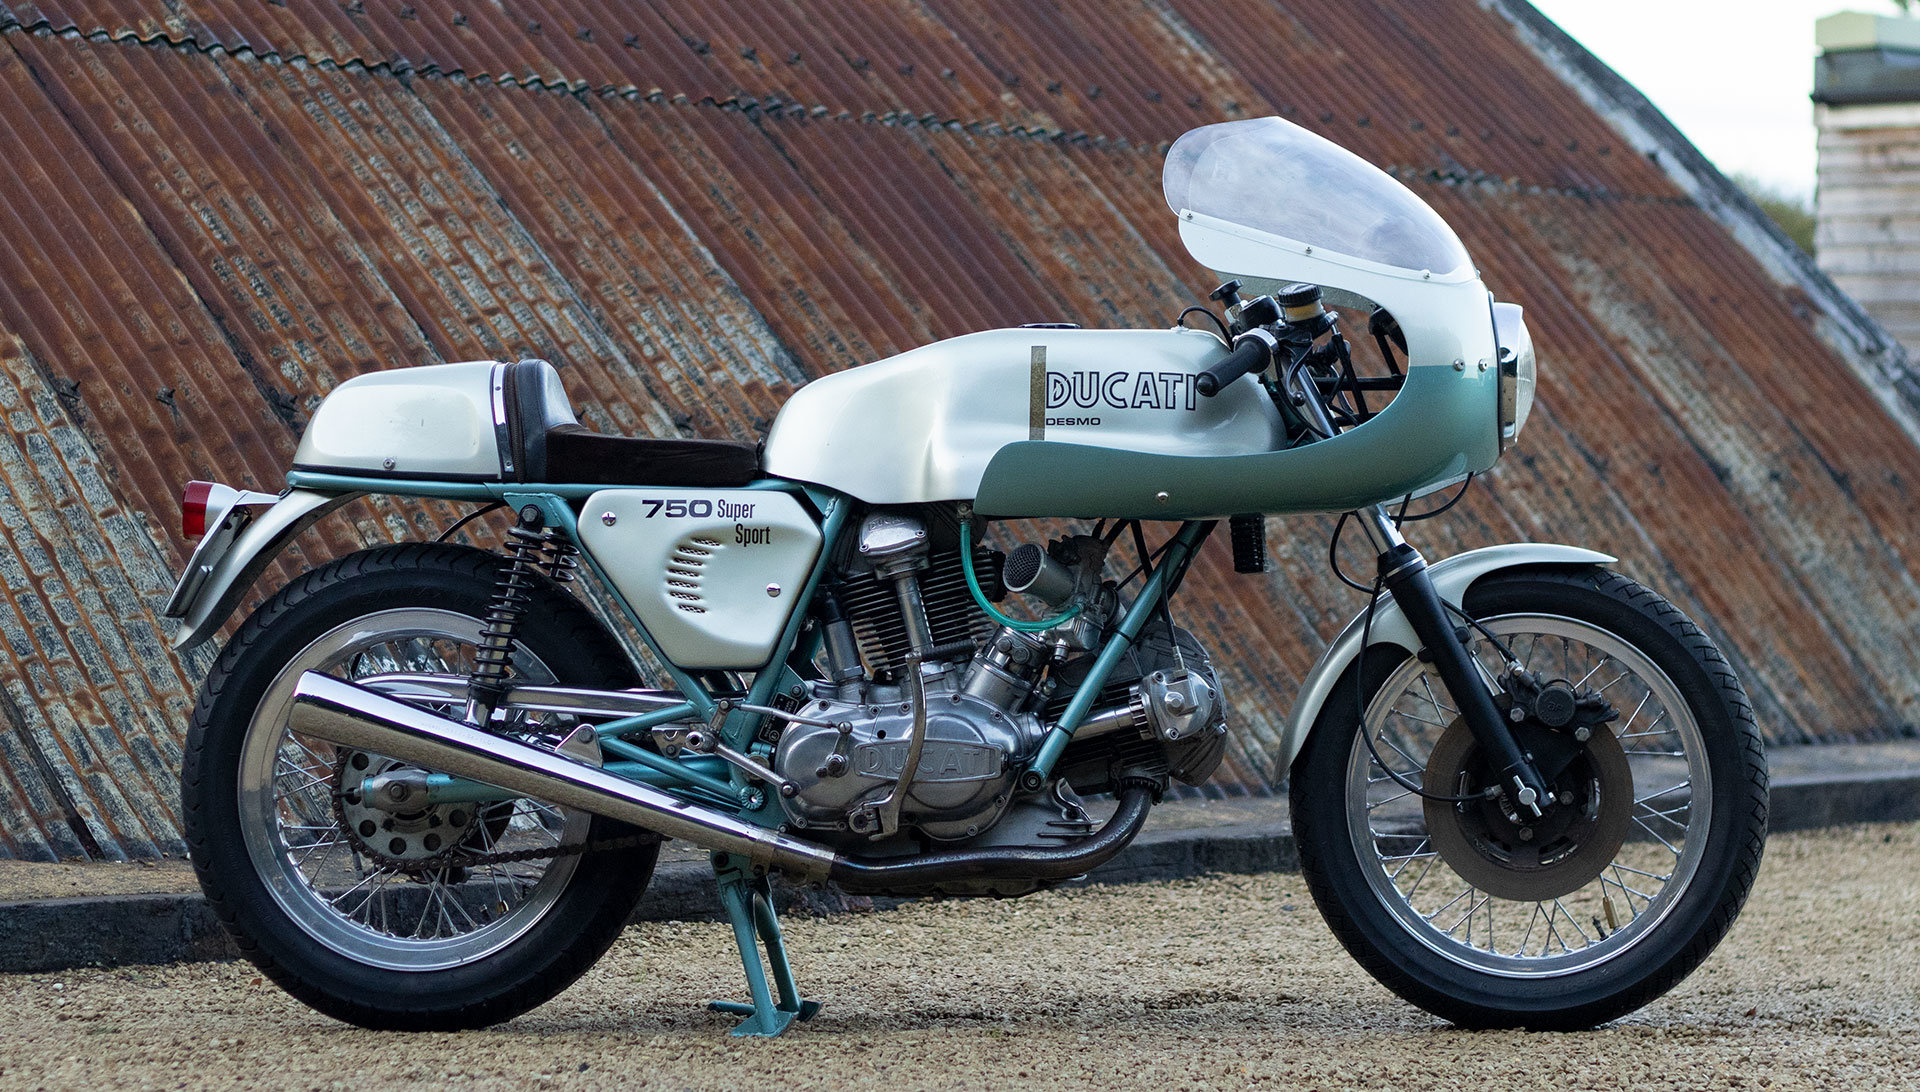 1974 Ducati 750 SS 'Green Frame' - Genuine with Falloon Report For Sale (picture 4 of 17)